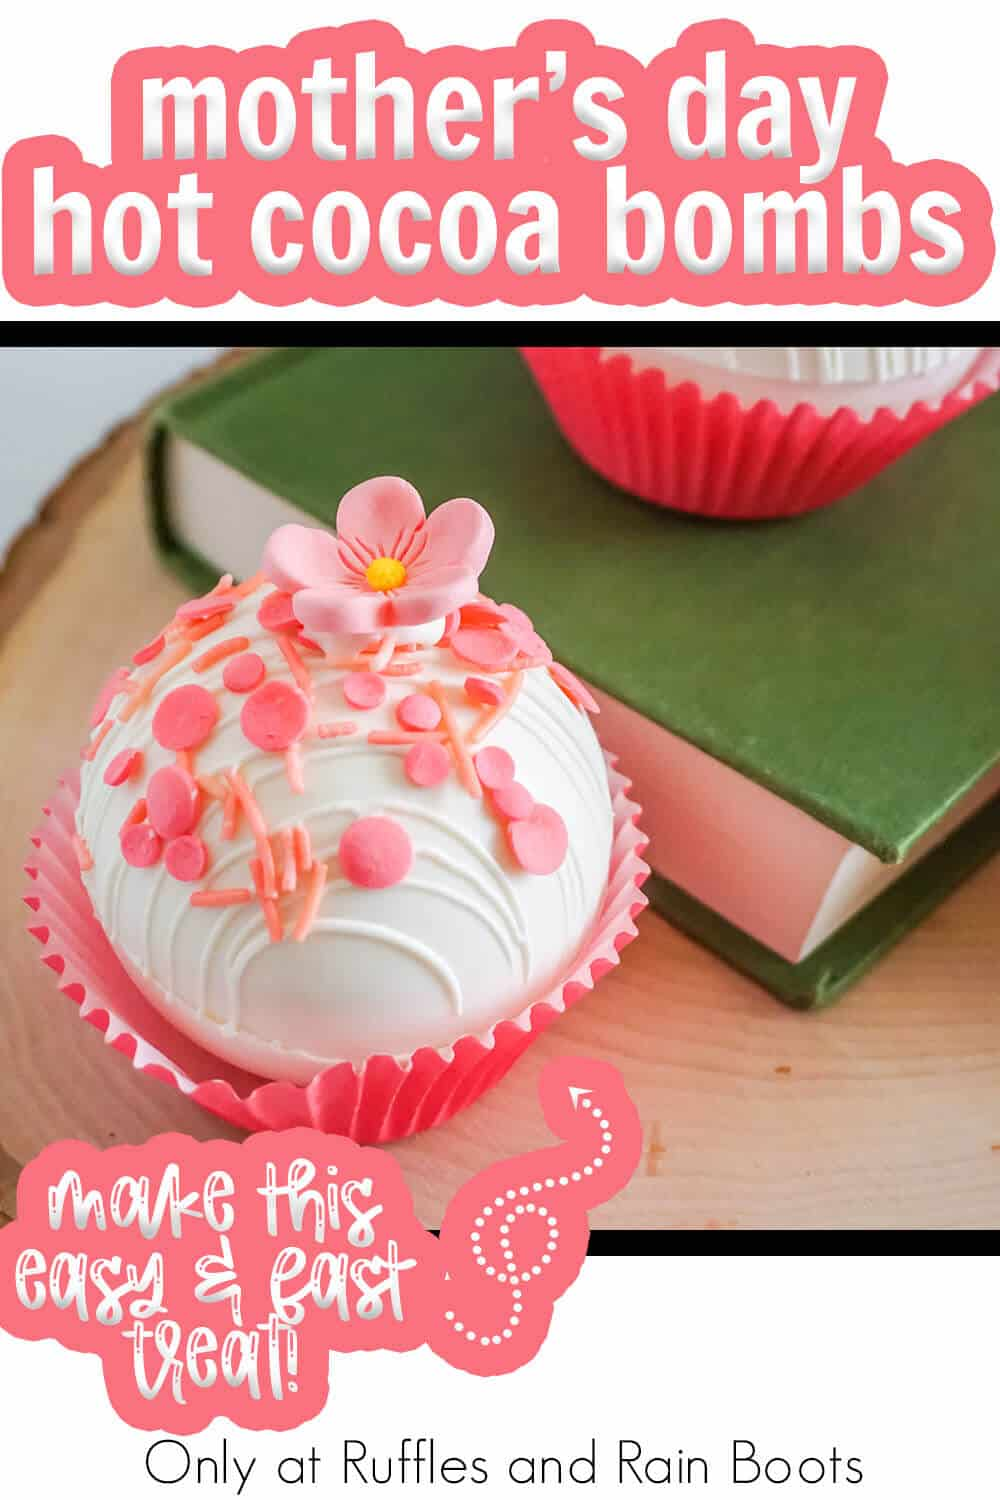 spring birthday hot cocoa bomb recipe with text which reads mother's day hot cocoa bombs make these easy & fast treats!